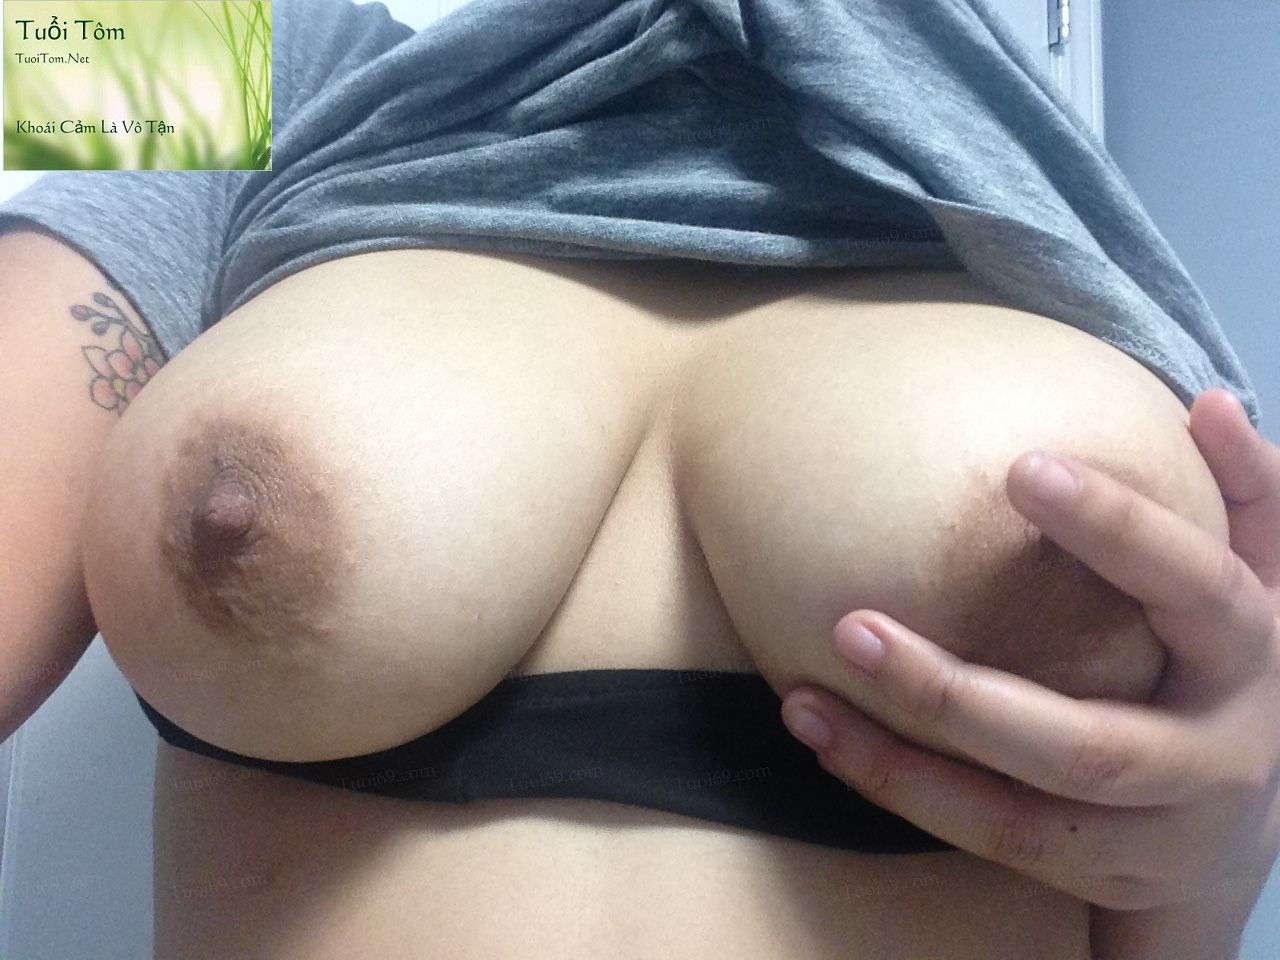 Vietnamese_Canada_Nguyen_Laura_Shows_Pink_Pussy_72